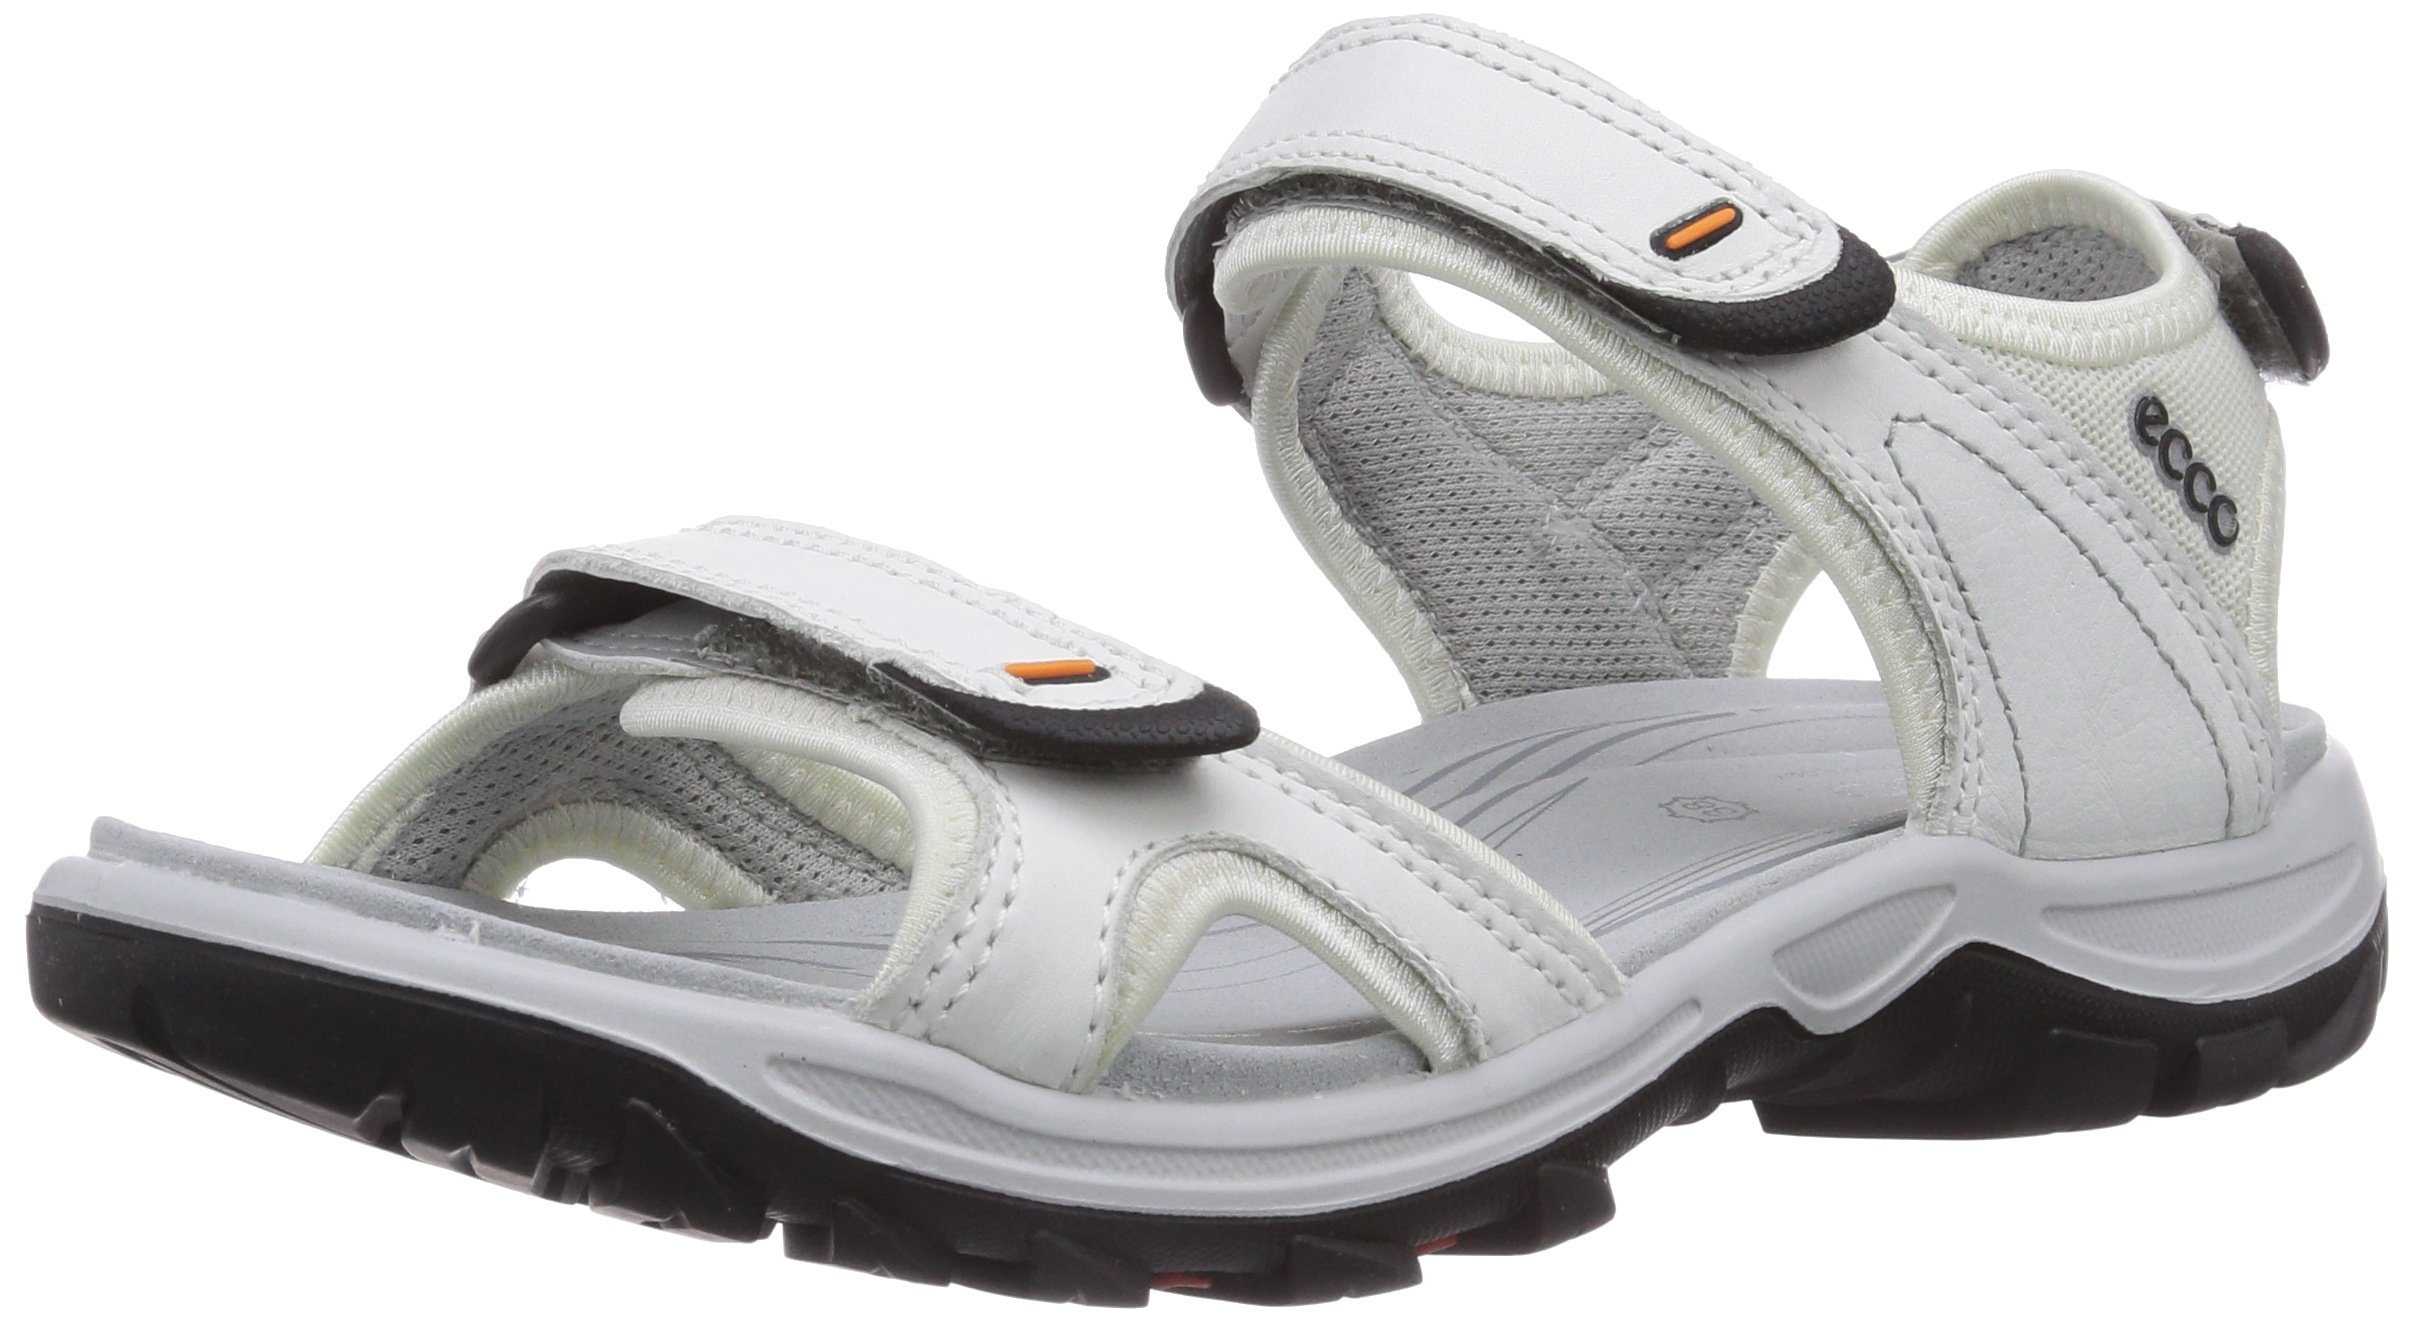 ECCO Women's Offroad Lite Rainer Sandal Outdoor Sandal, White/Shadow White, 37 EU/6-6.5 M US